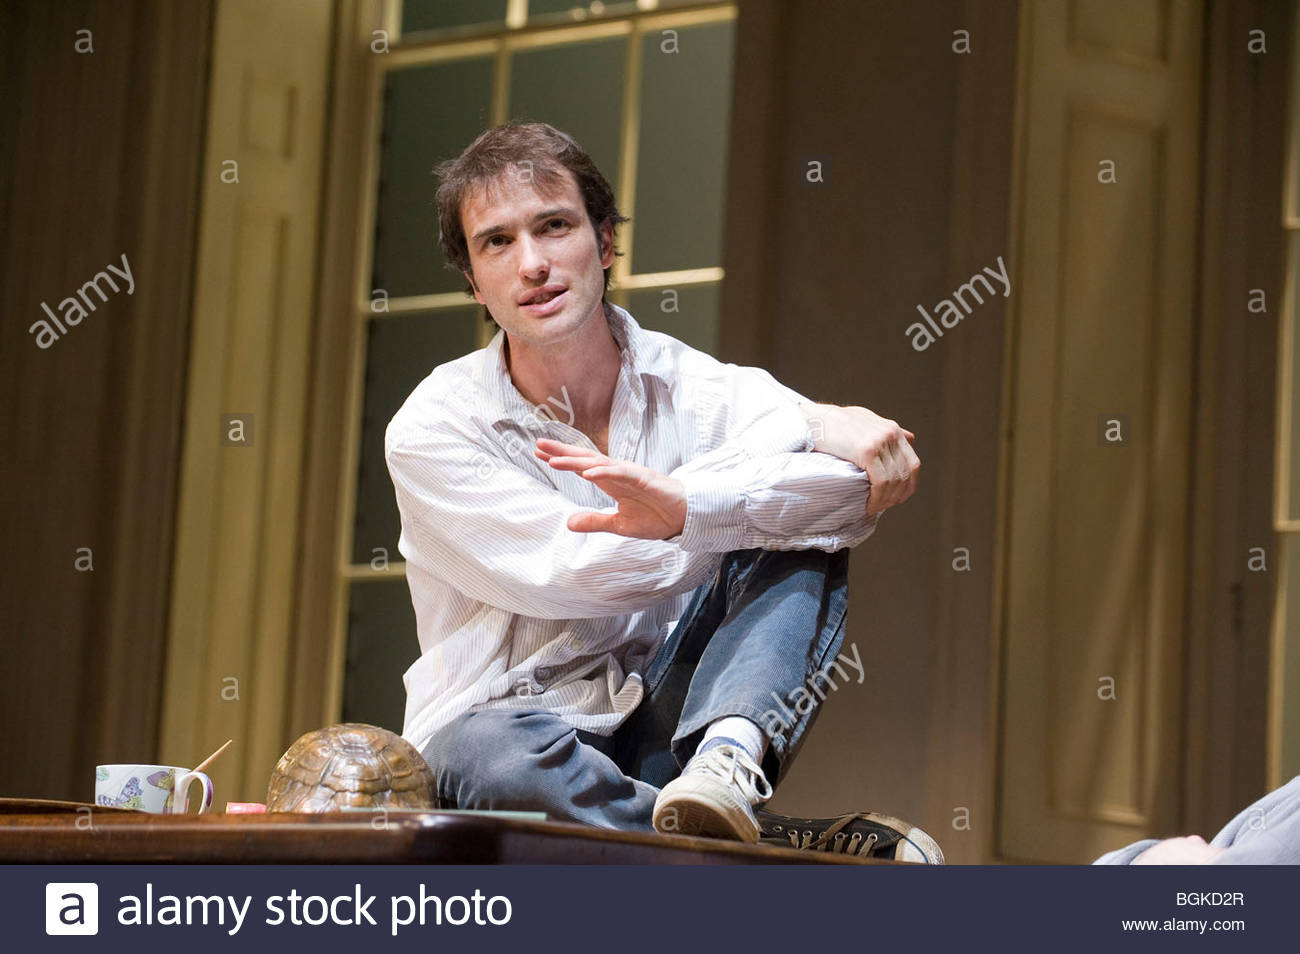 Arcadia by Tom Stoppard,directed by David Leveaux. Stock Photo